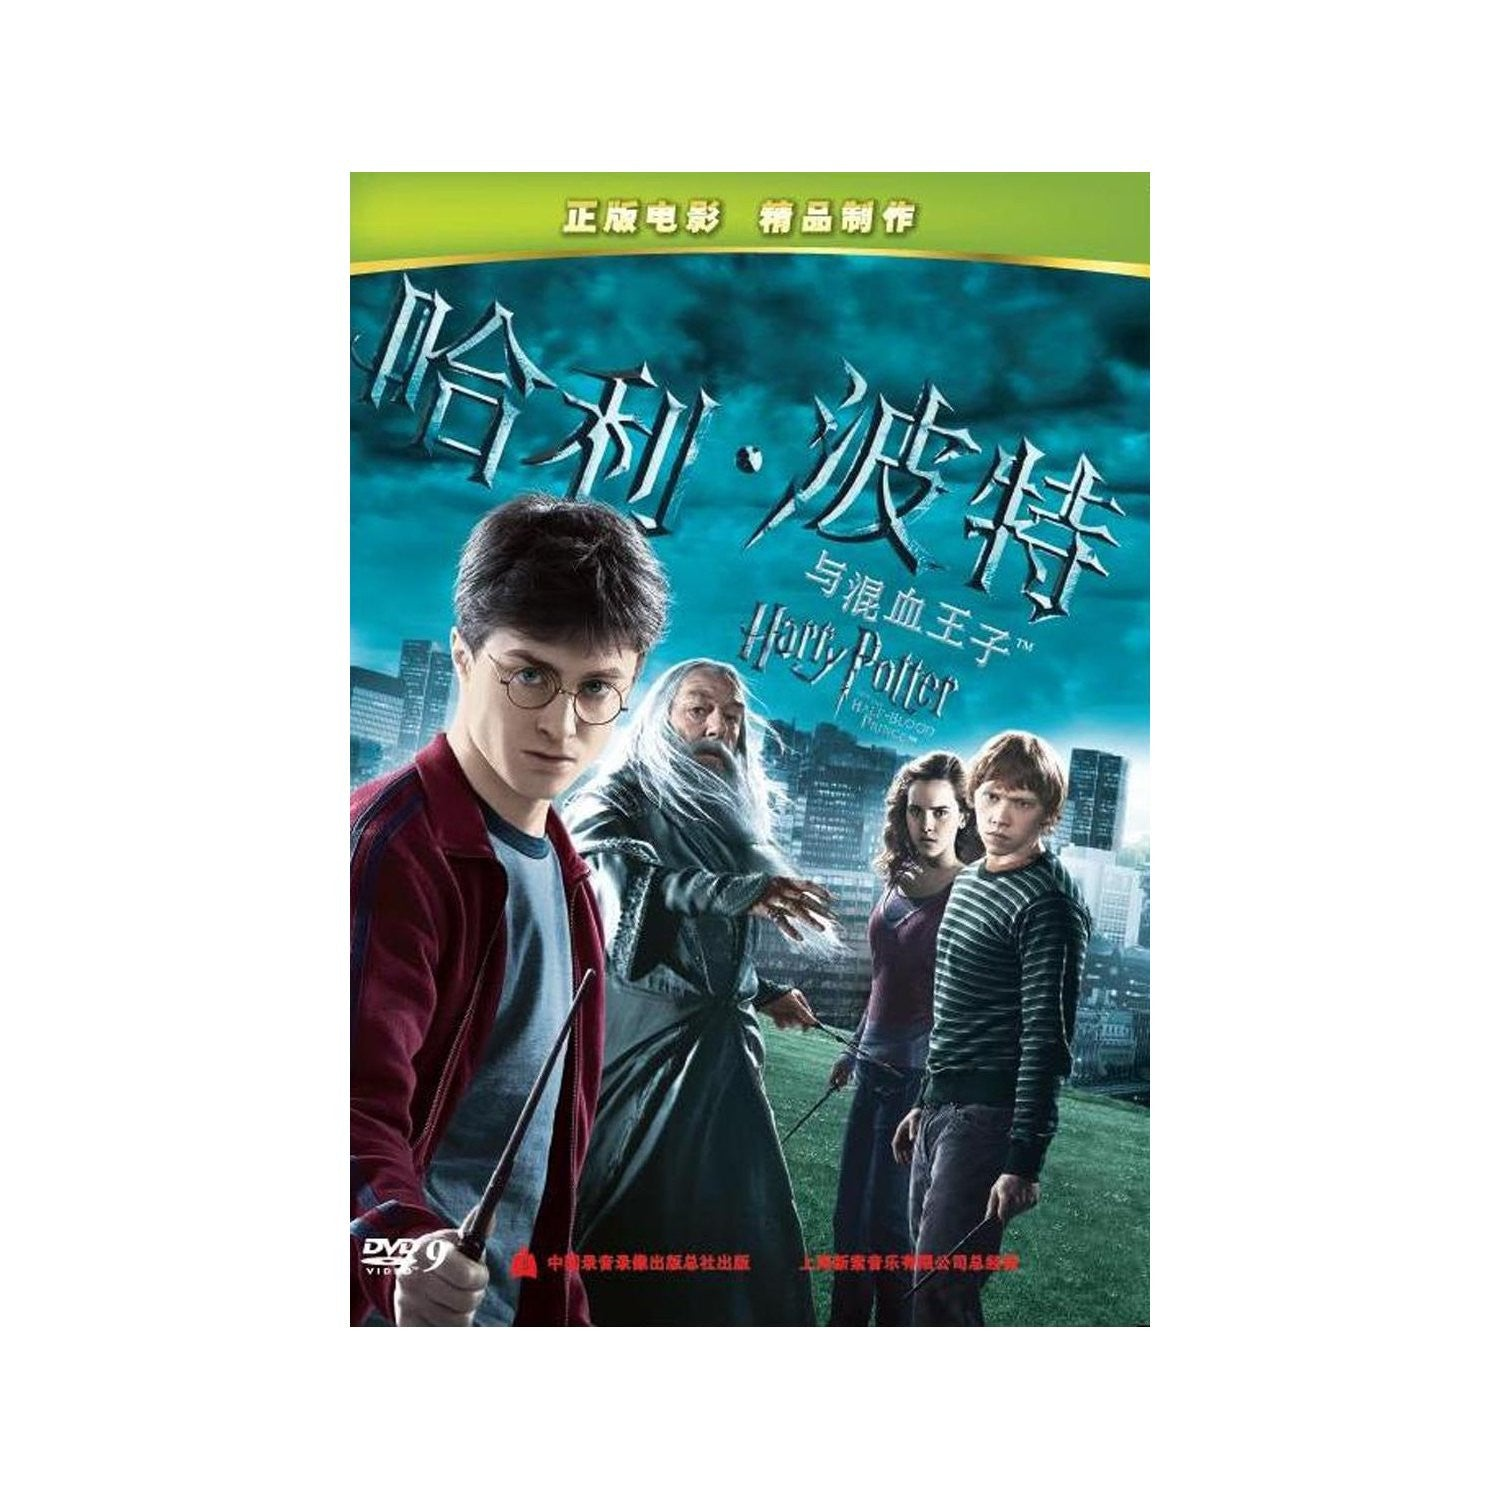 Harry Potter and the Half-Blood Prince (Mandarin Chinese Edition)